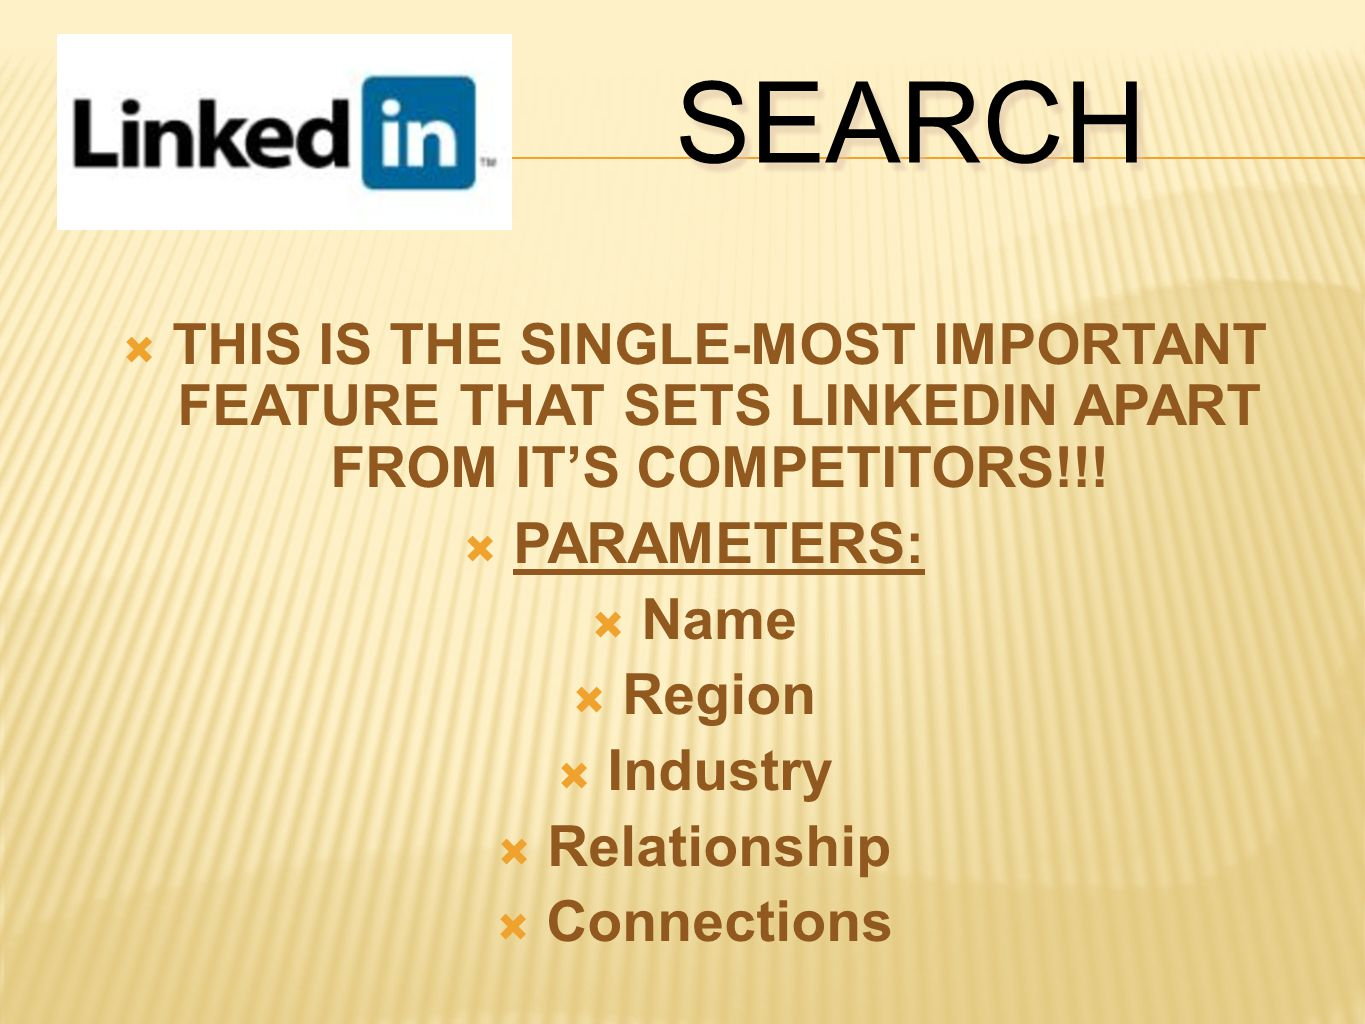  THIS IS THE SINGLE-MOST IMPORTANT FEATURE THAT SETS LINKEDIN APART FROM IT'S COMPETITORS!!.